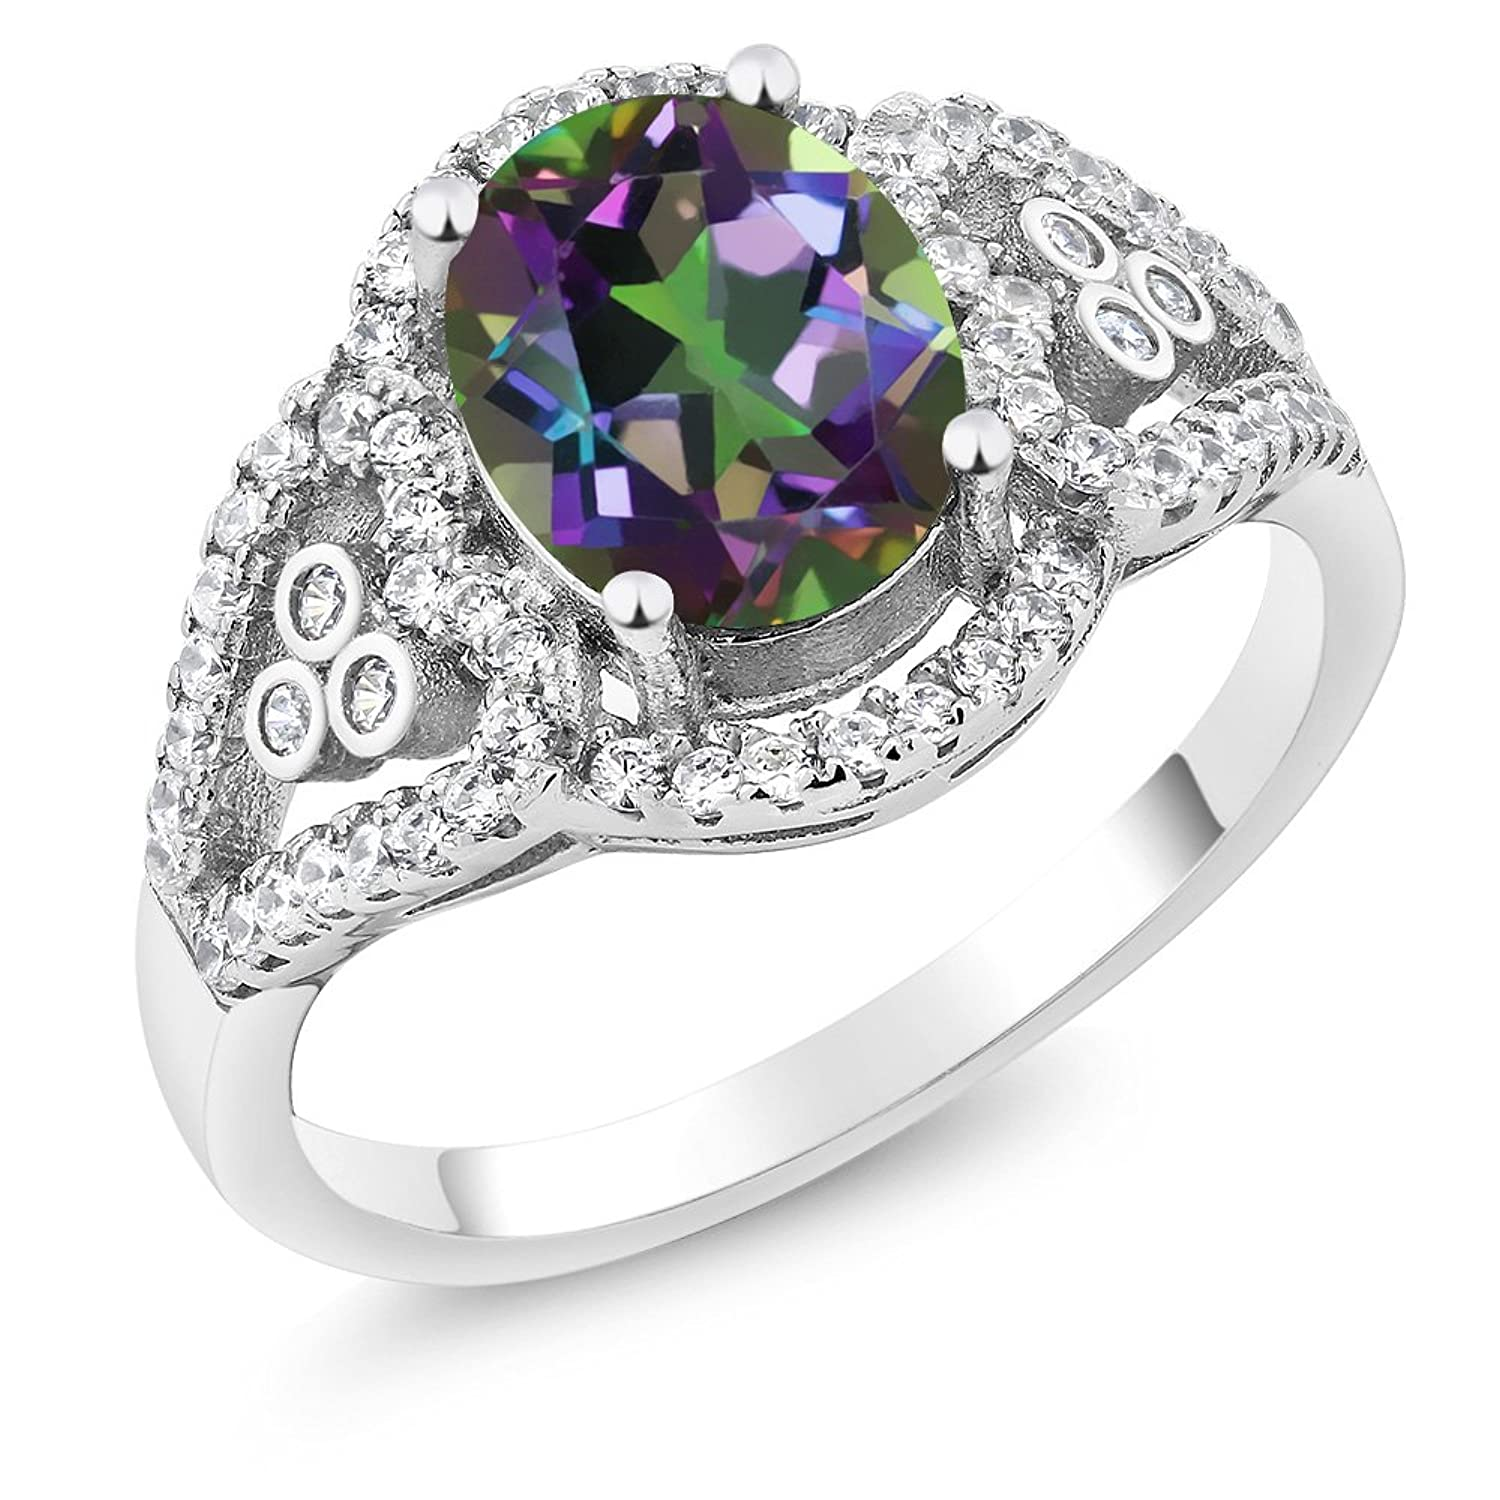 2.32 Ct 9x7mm Oval Green Mystic Topaz 925 Sterling Silver Ring (Available in size 5, 6, 7, 8, 9)